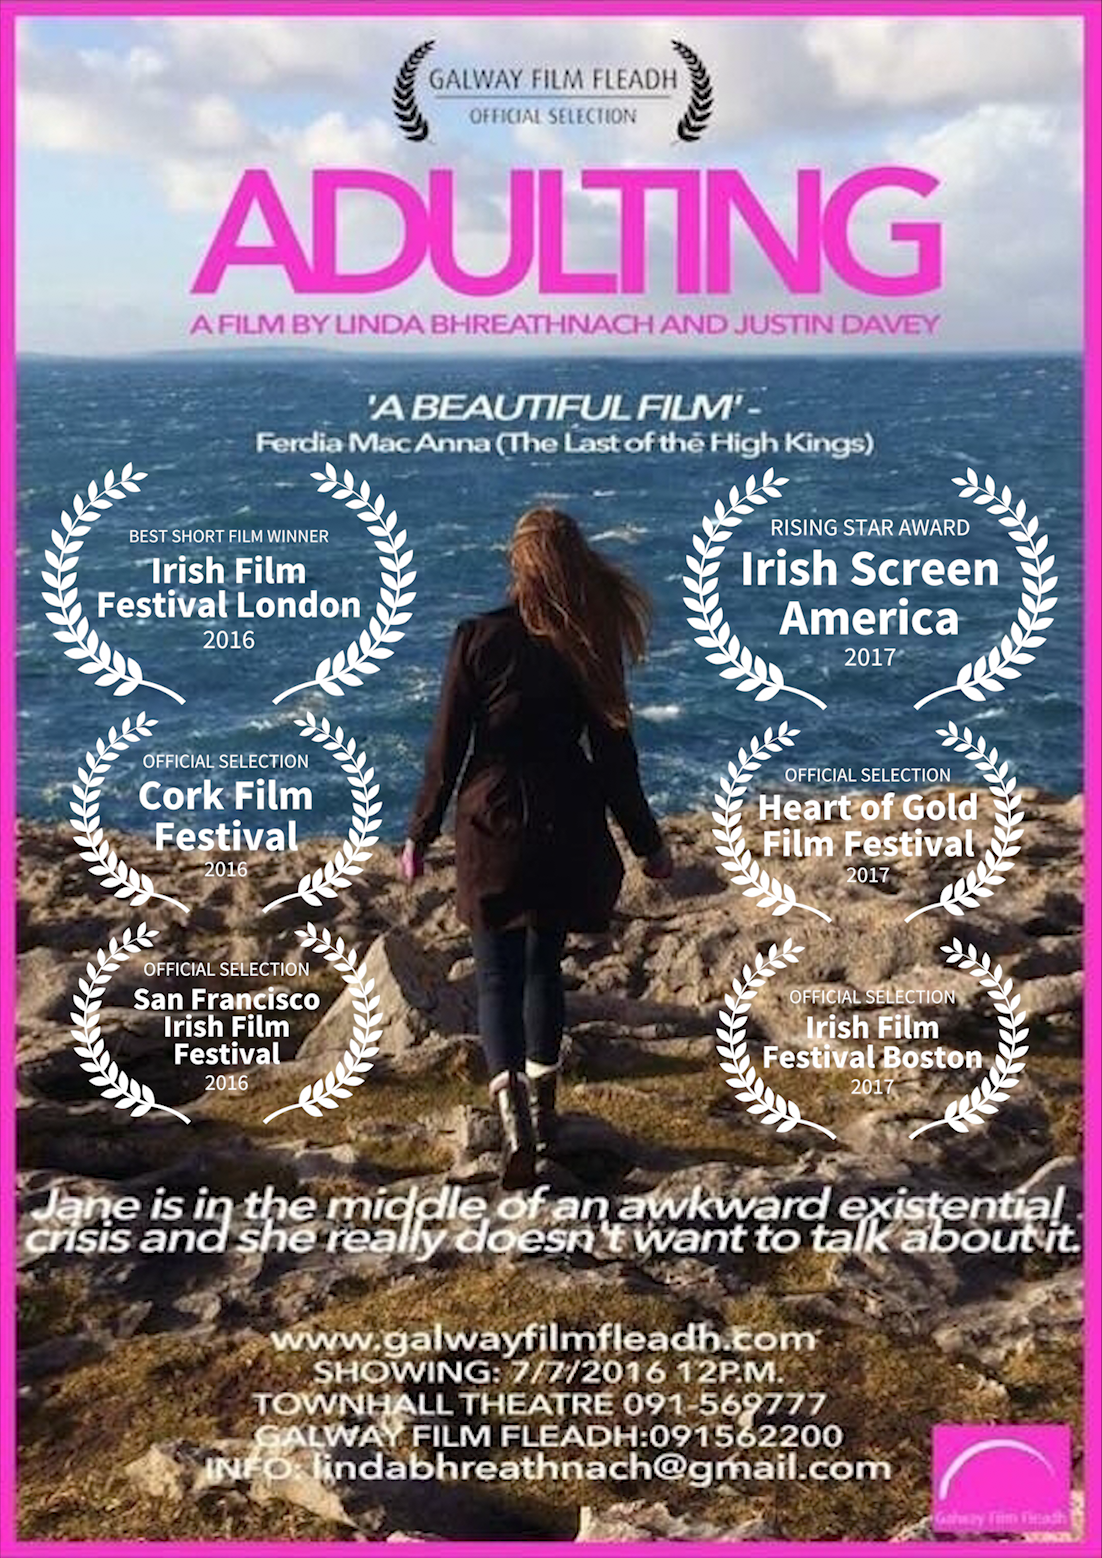 Adulting premiered at the Galway Film Fleadh 2016 and went on to screen at the Cork Film Festival 2016, San Francisco Irish Film Festival 2016, Irish Screen America 2016 (Los Angeles, San Francisco and New York), Irish Film Festival London 2016 (where it won Best Short Film), Irish Film Festival Boston 2017, Irish Film Festival Malta 2017, Mediterranean Film Festival Split Croatia, 2017, Female Eye Film Festival 2017, Toronto and the Heart of Gold Festival 2017 in Australia.